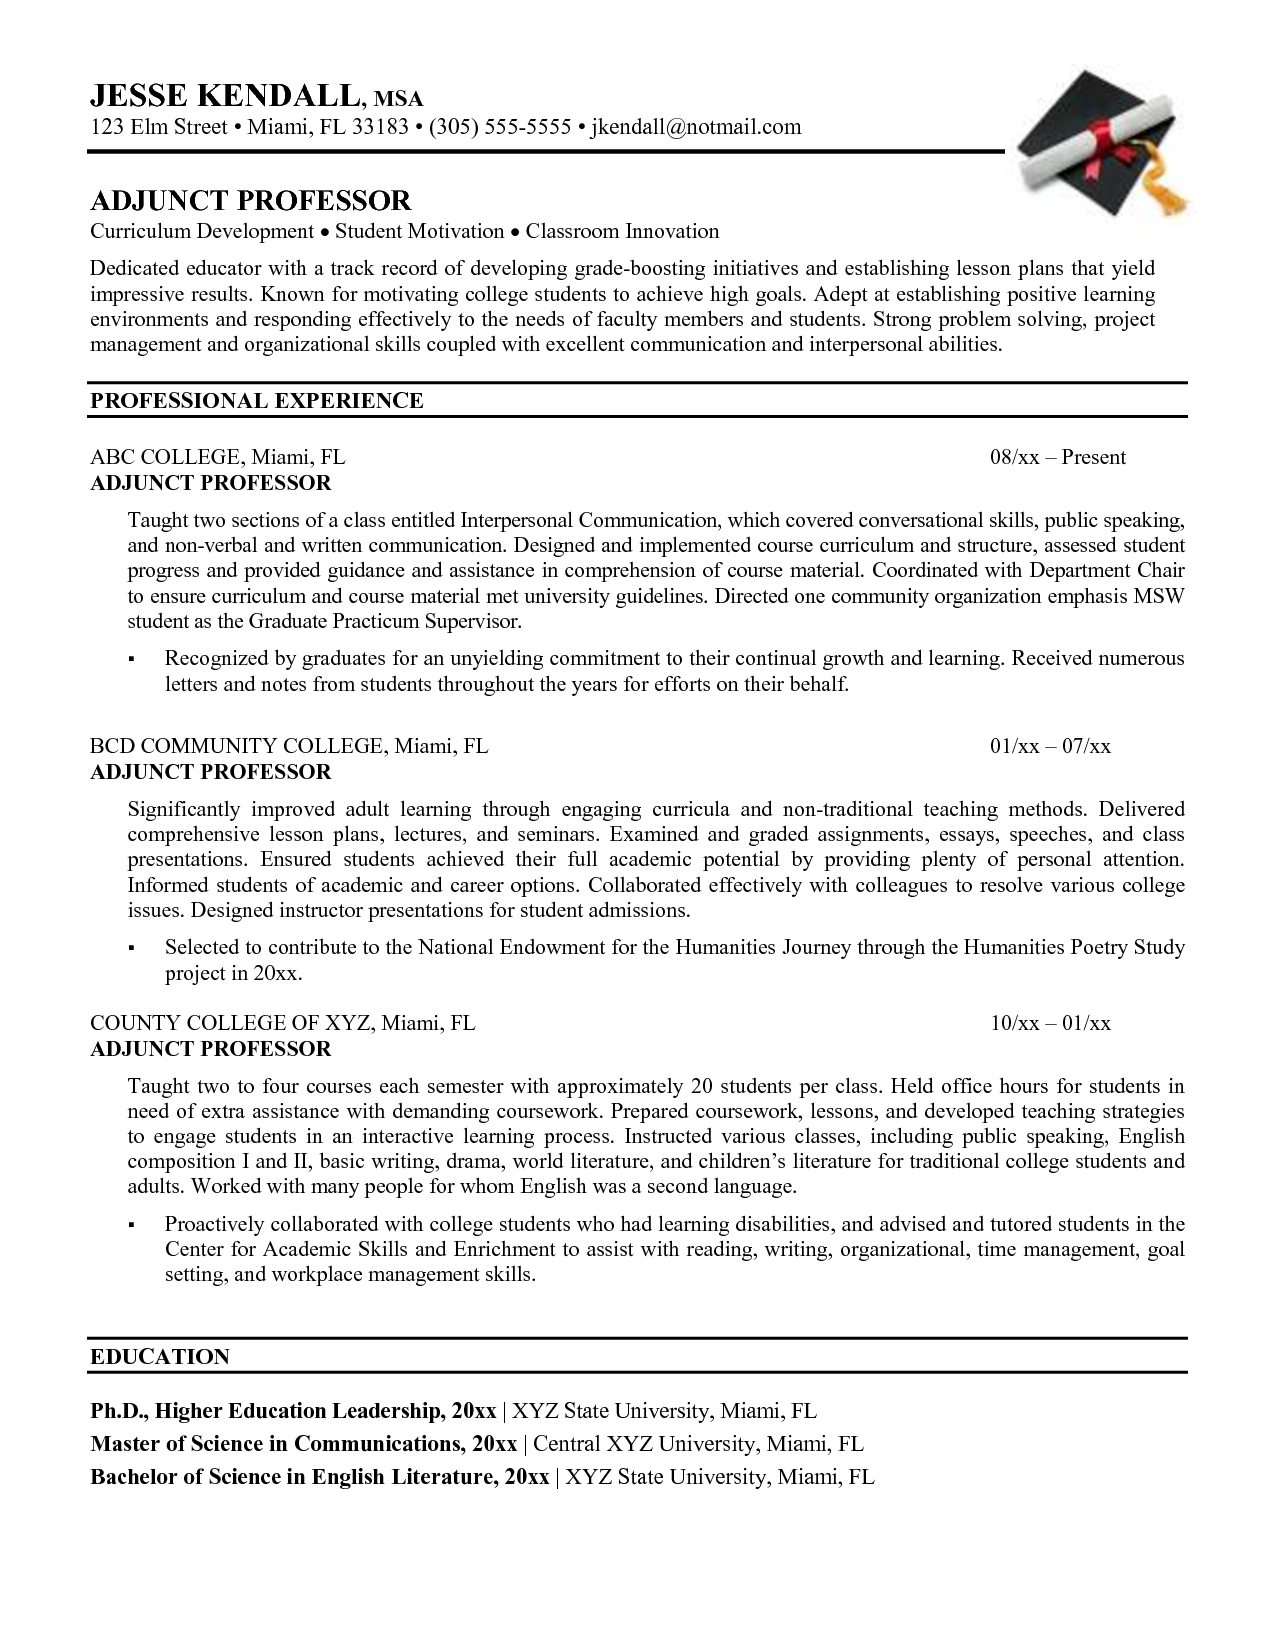 adjunct instructor resume - Juve.cenitdelacabrera.co